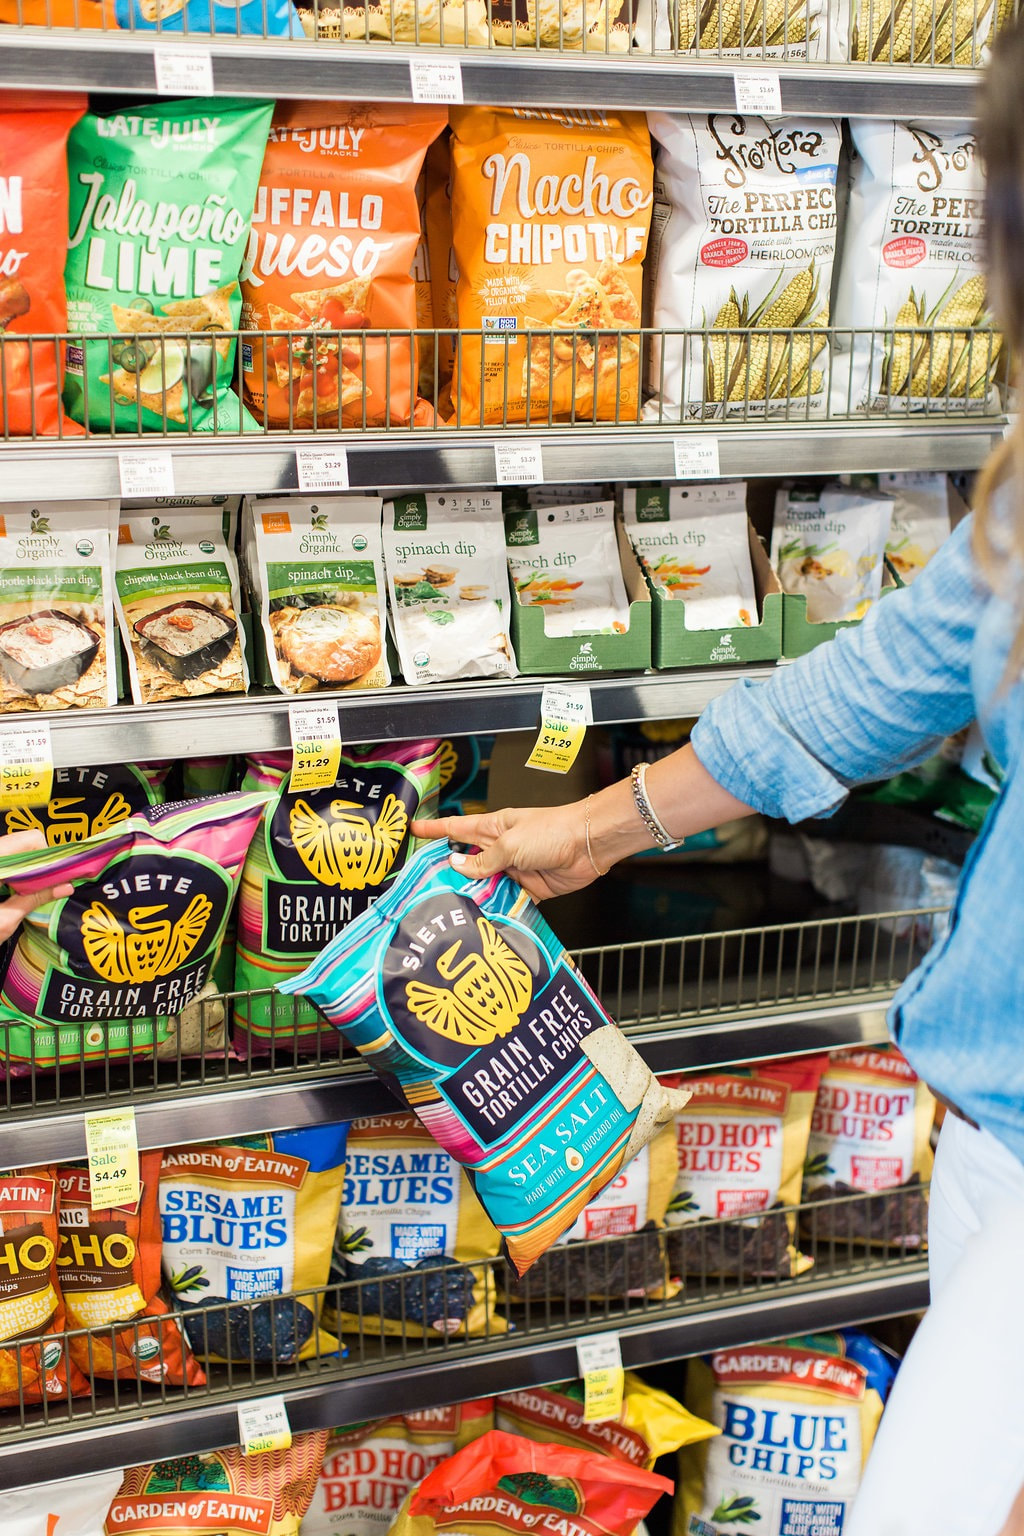 Starting in school year , all foods sold at school during the school day are required to meet nutrition standards. The Smart Snacks in School regulation applies to foods sold a la carte, in the school store, vending machines, and any other venues where food is sold to students.